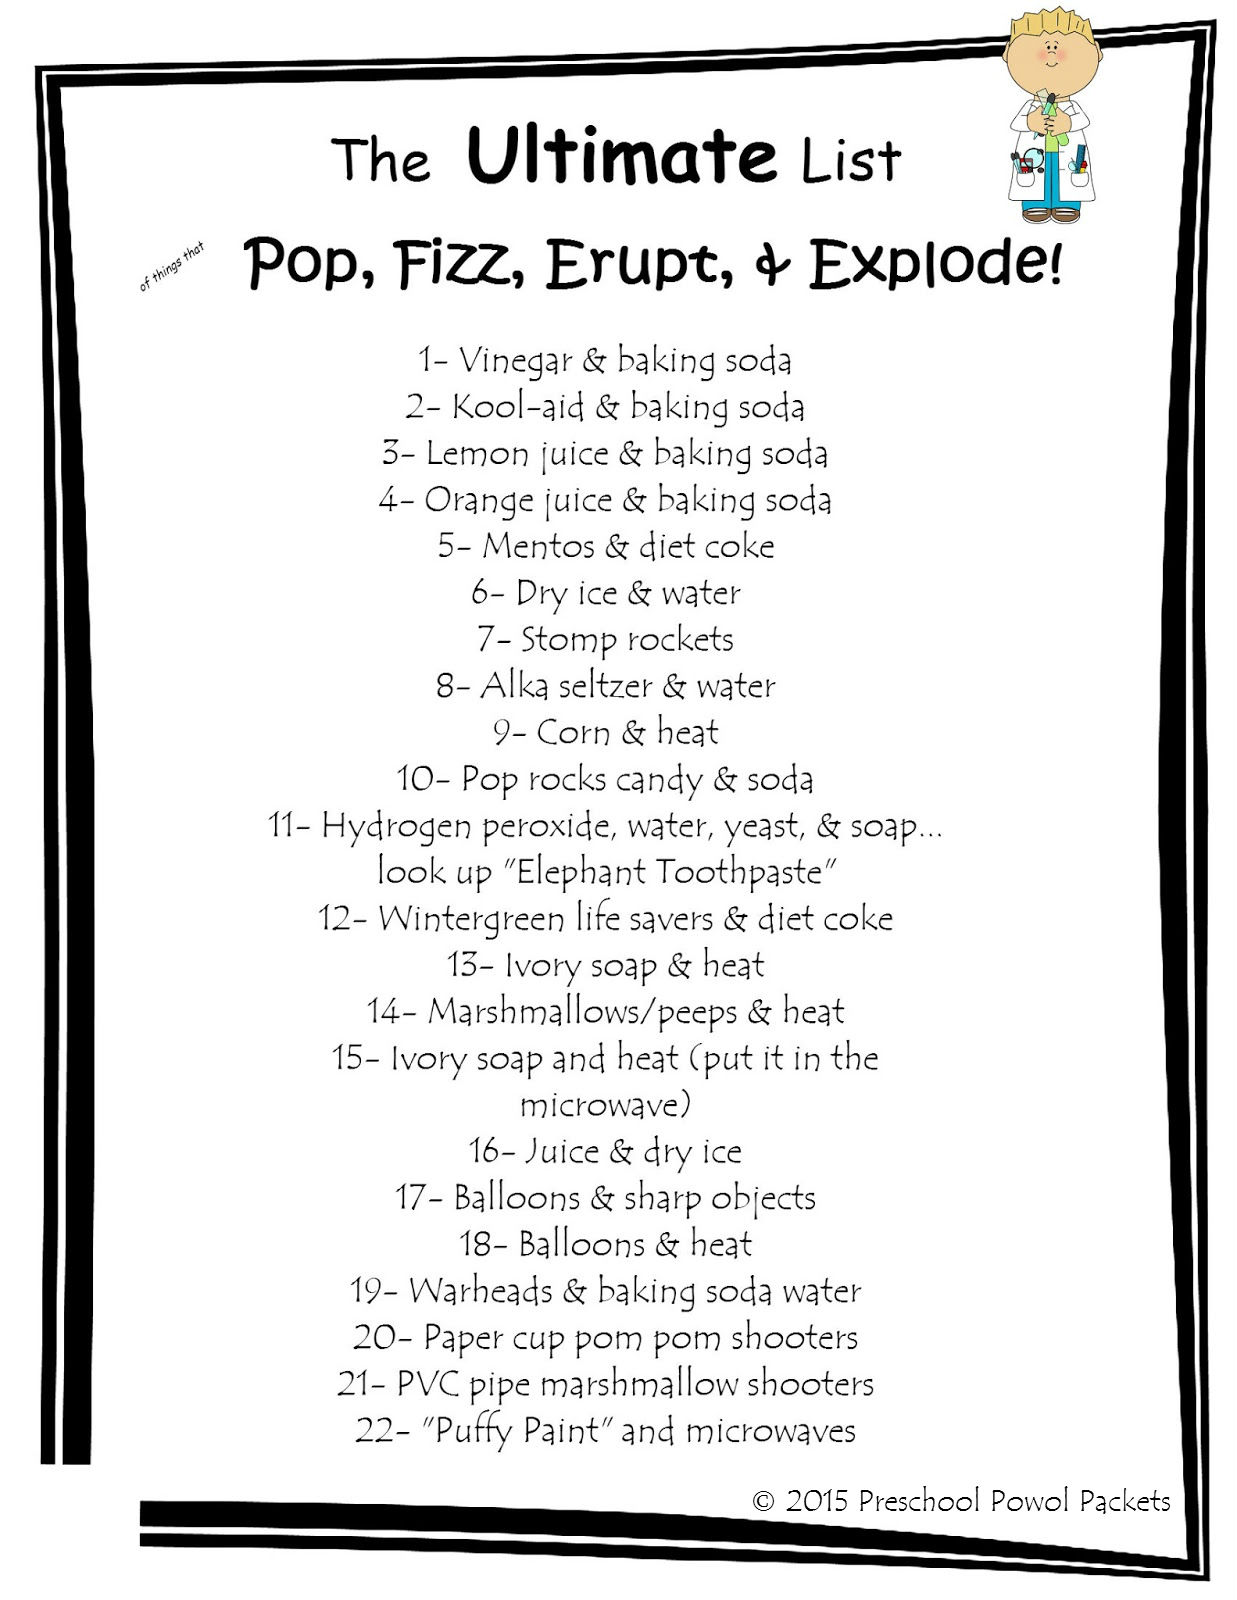 The Ultimate List of Things that Pop, Fizz, Erupt, & Explode